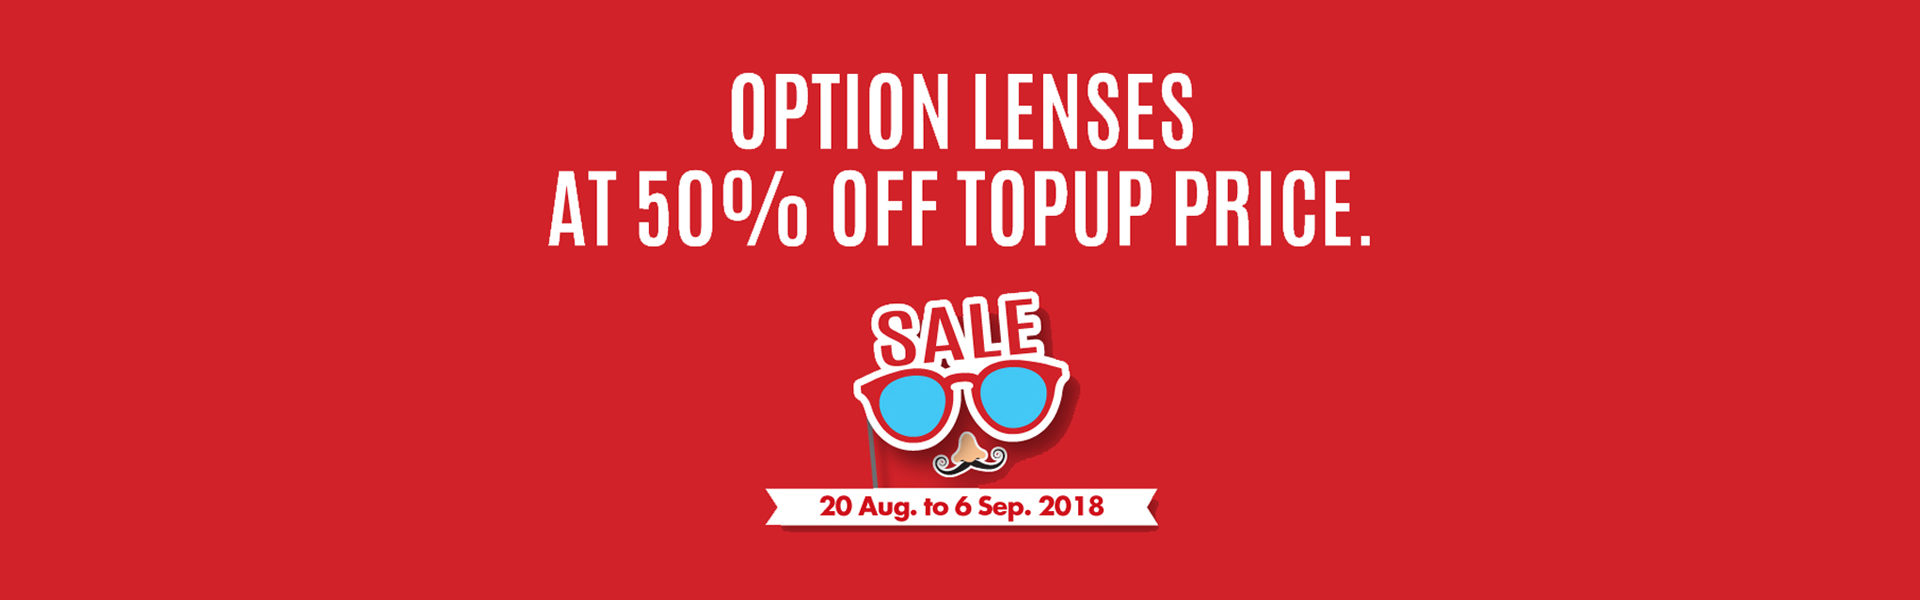 OPTION LENSES AT 50% OFF TOPUP PRICE